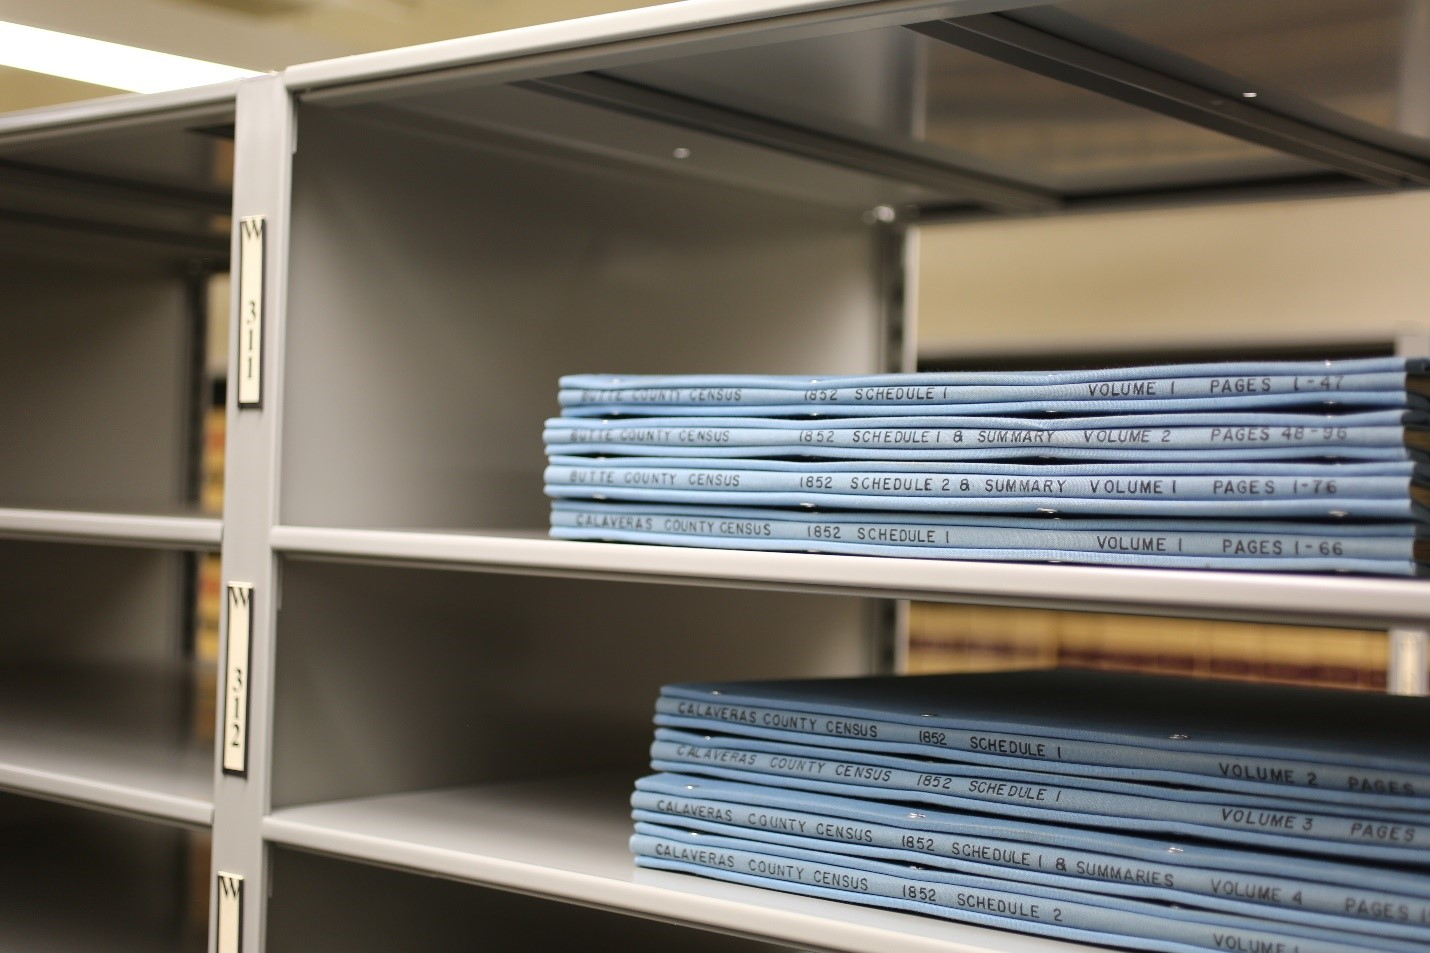 Census books in the California State Archives' stacks.